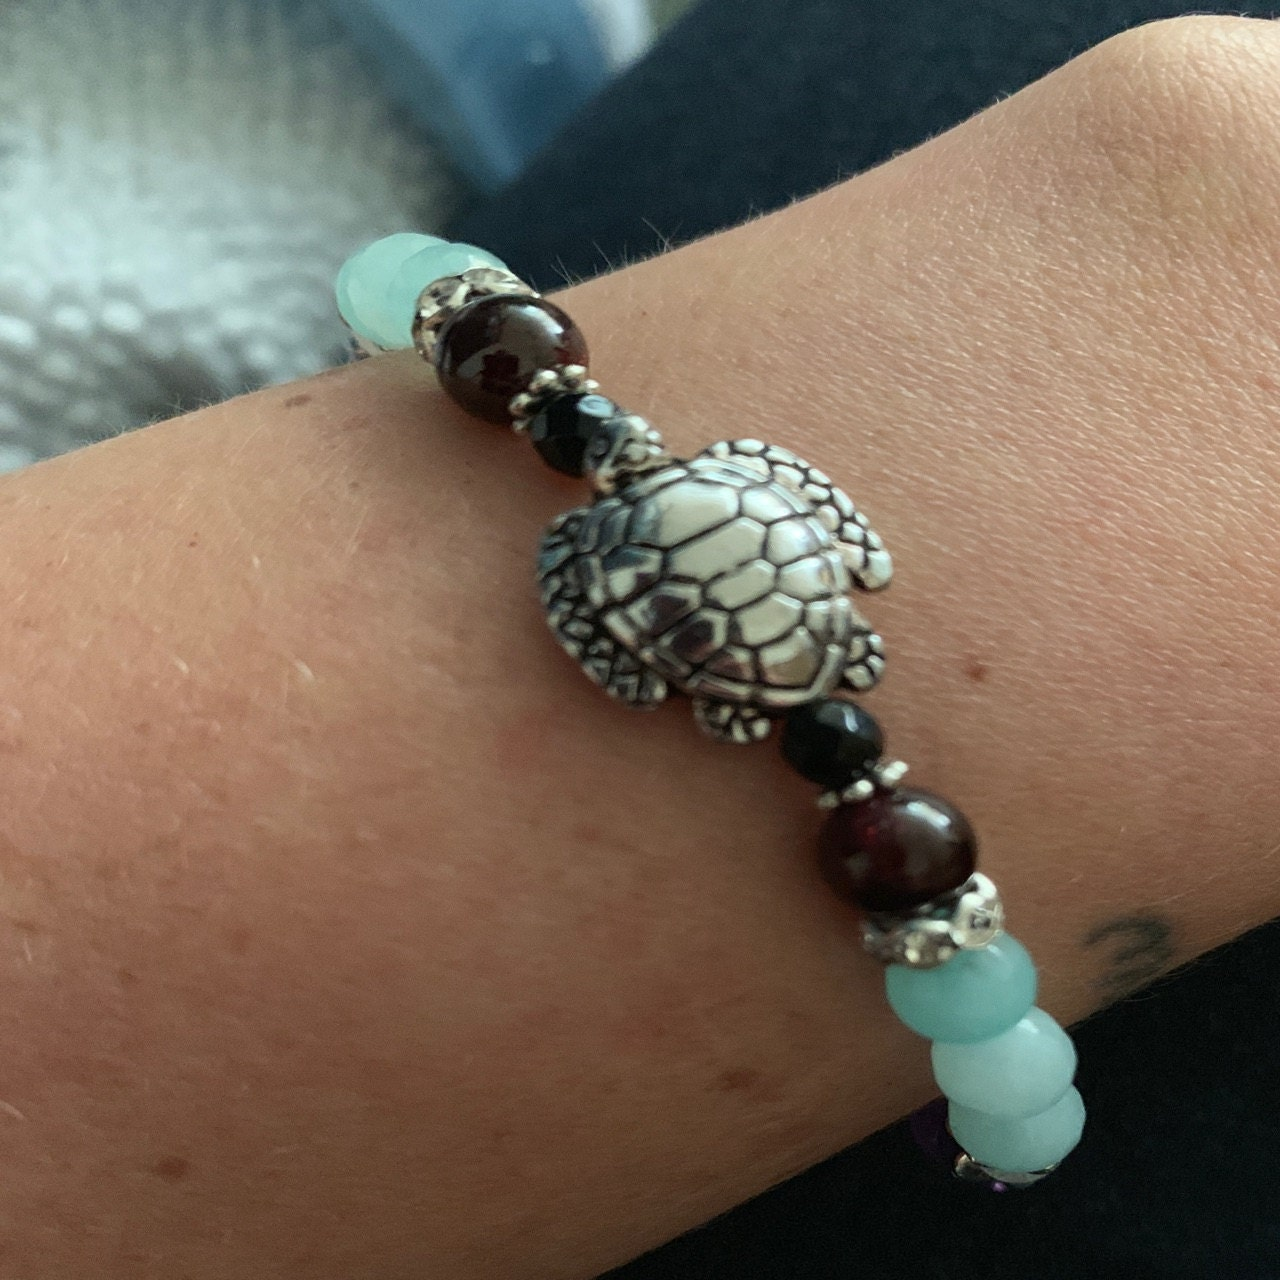 Kathryn Hooten added a photo of their purchase